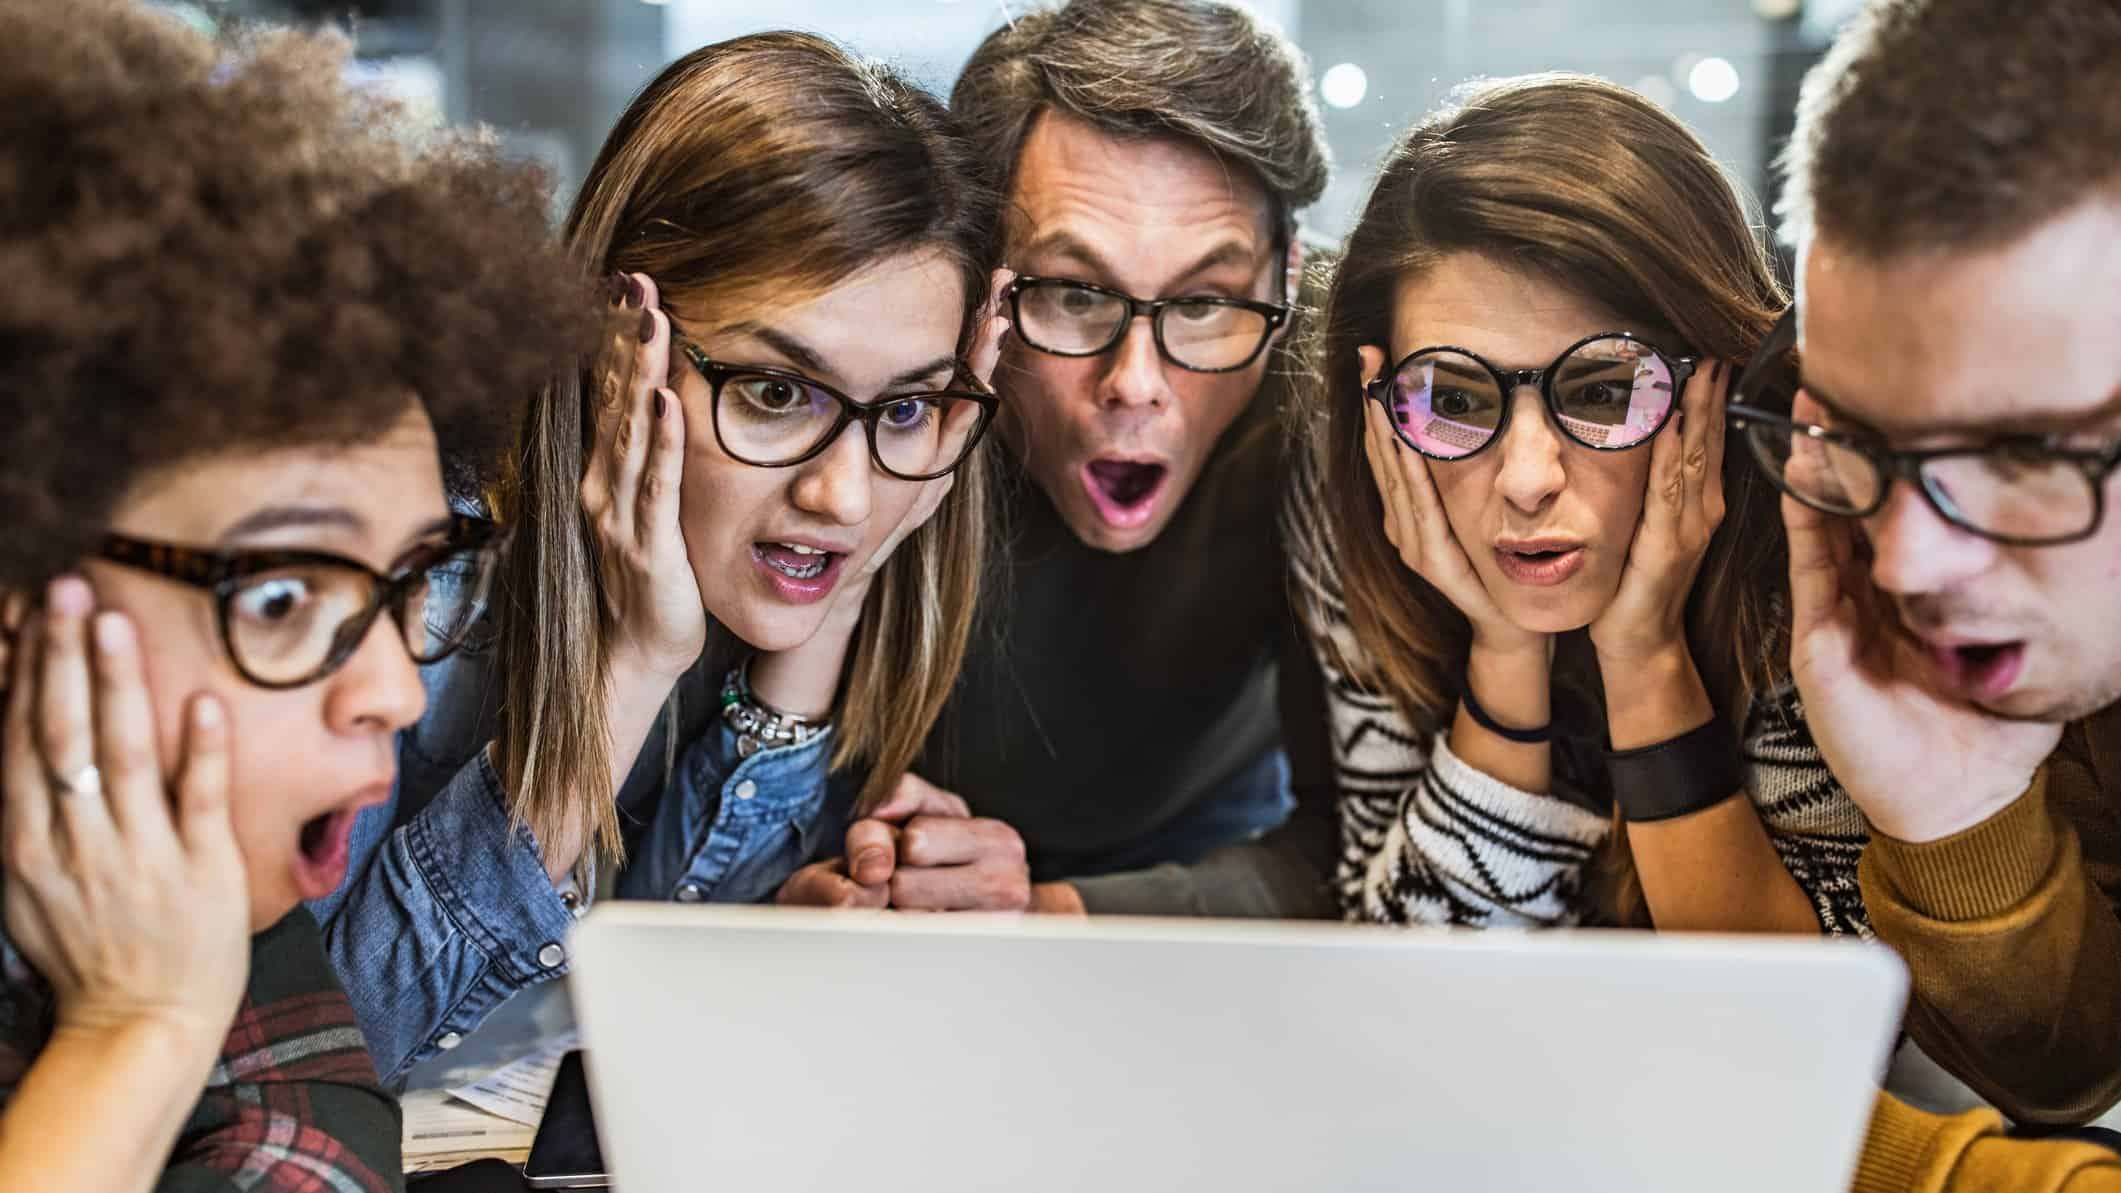 a group of people gathered around a laptop computer with various expressions of interest, concern and surpise on their faces. All are wearing spectacles.